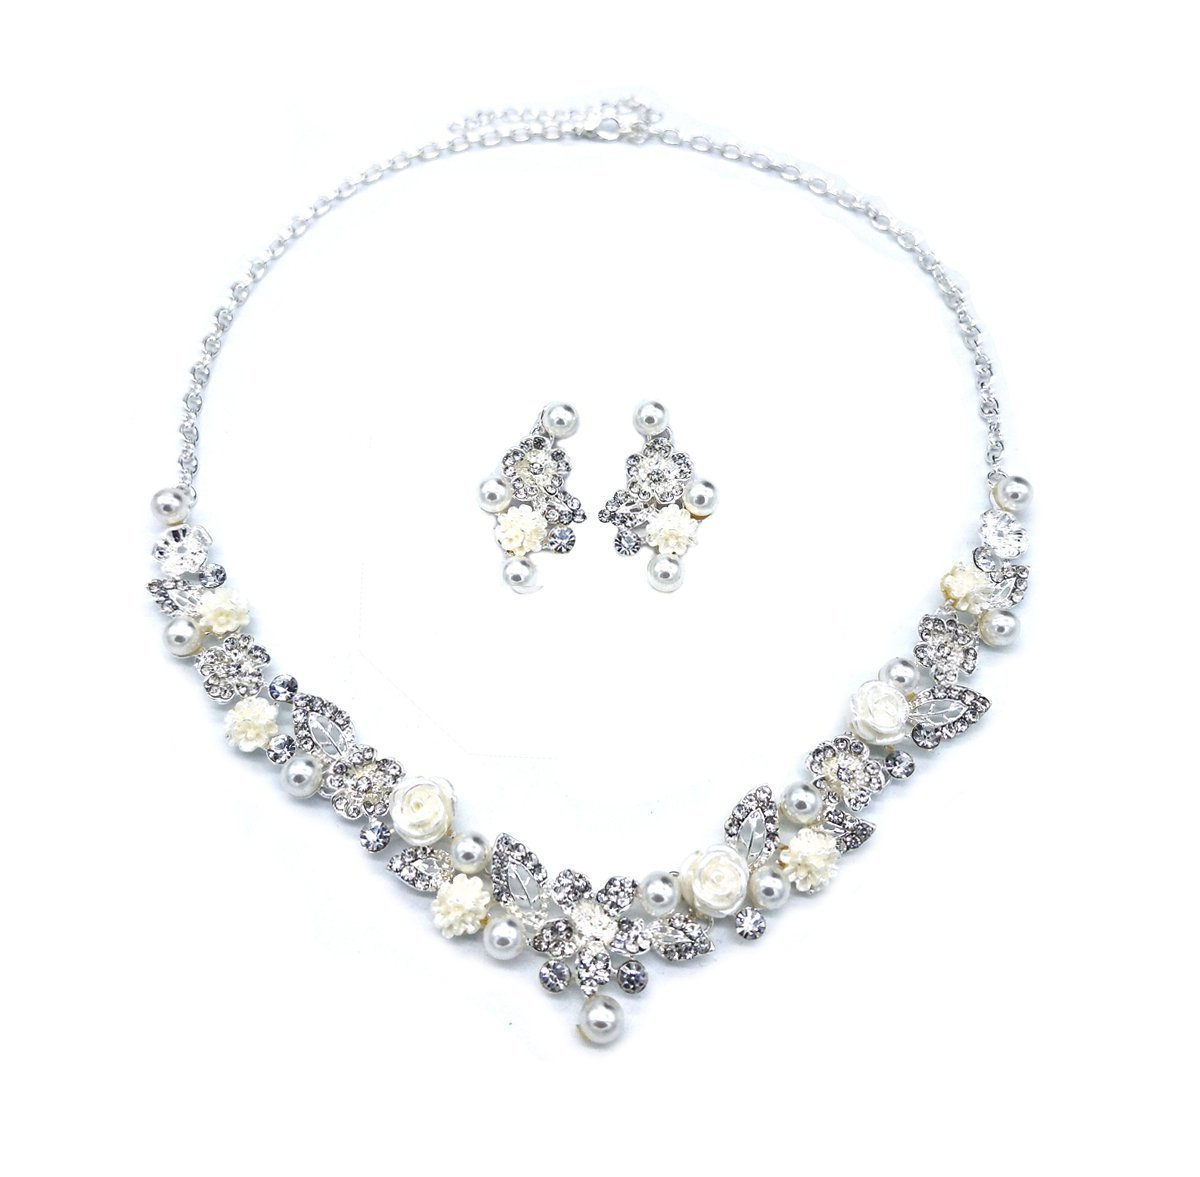 UDORA Silver Crystal Pearl White Flower Vintage Jewelry Set for Bridal Party